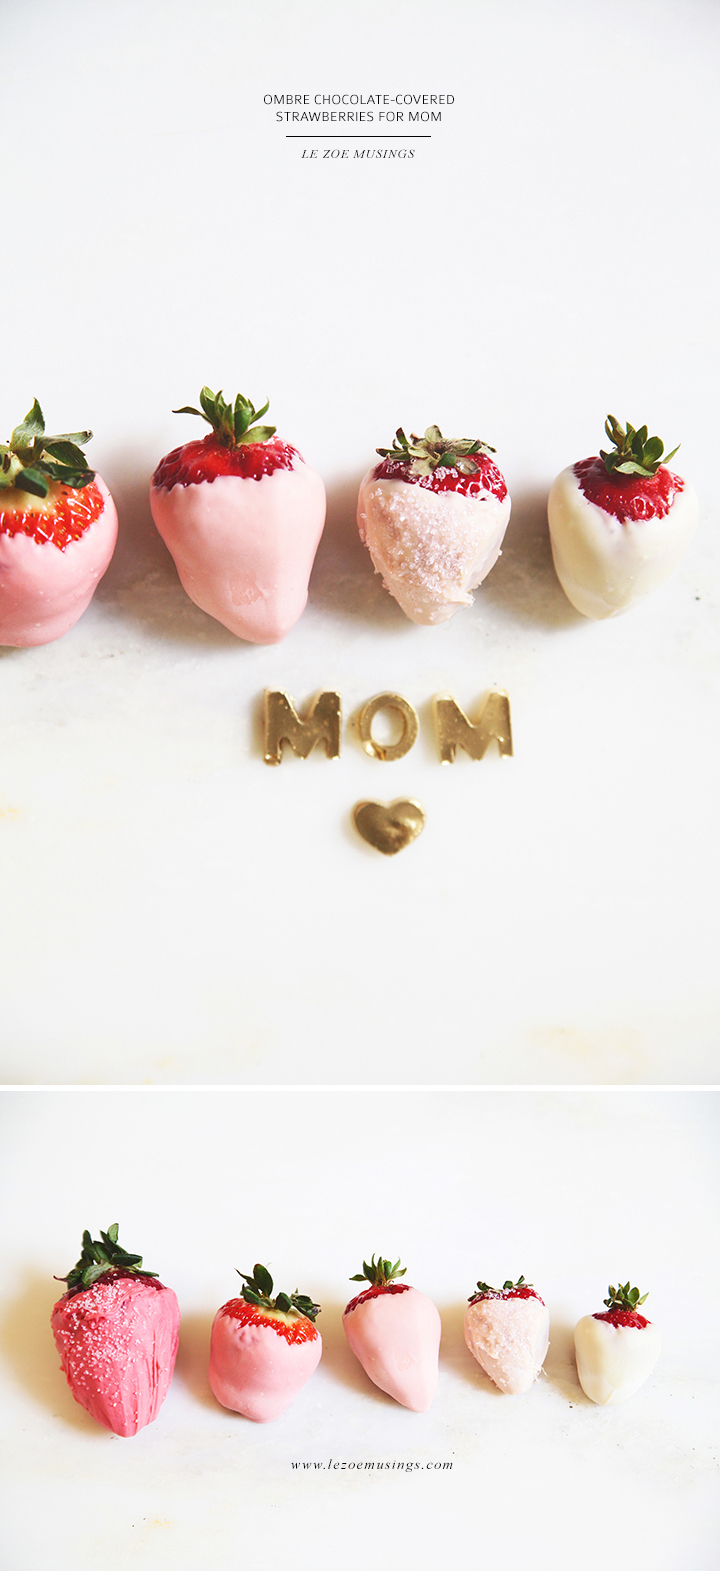 Ombre Strawberry for Mom By Le Zoe Musings 3